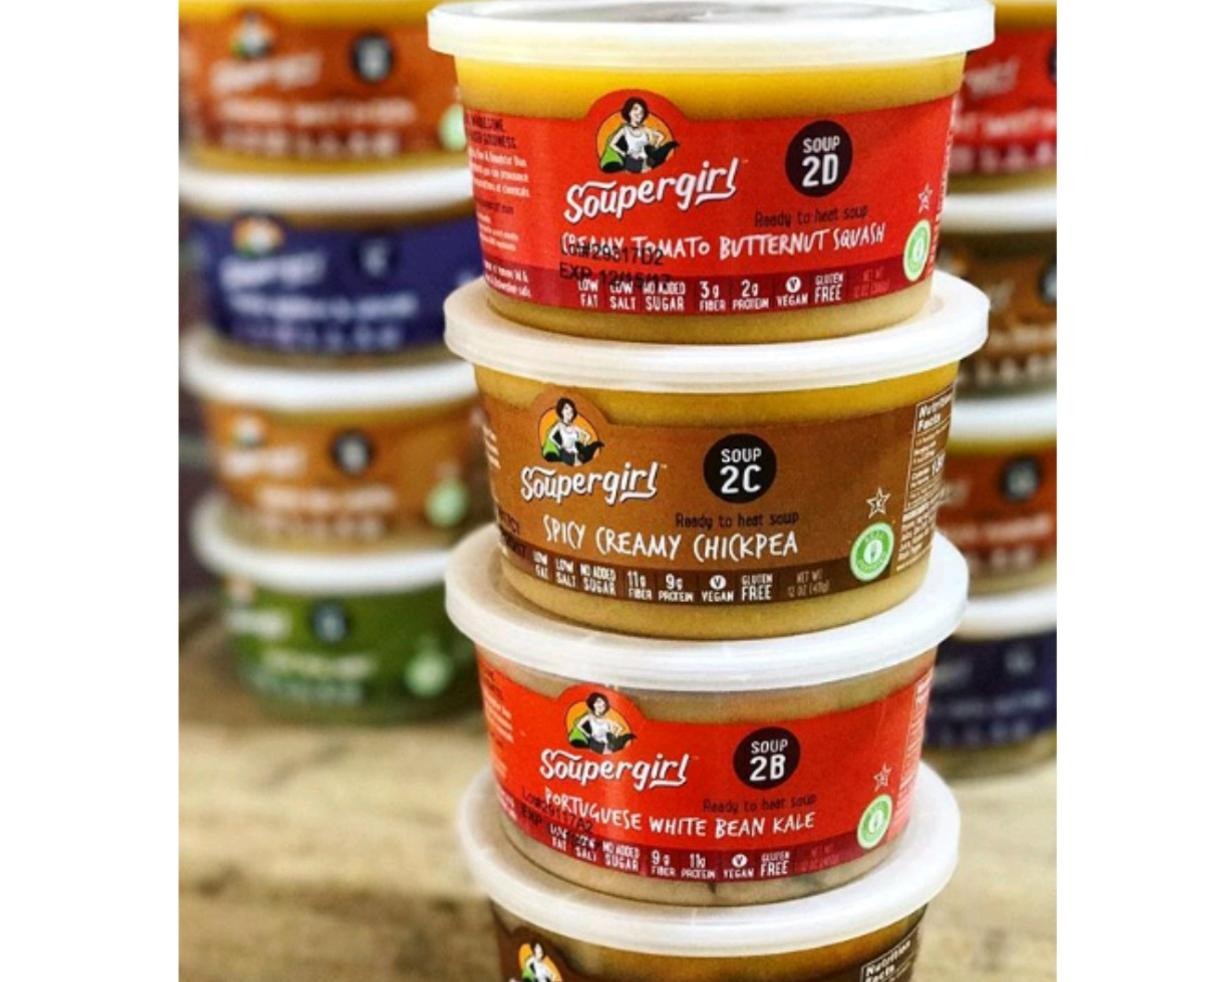 Soupergirl Soups - Forget the Prepping & the Cooking with a Variety of 20 Homemade, Healthy, Ready-to-go Soups (20% Off)